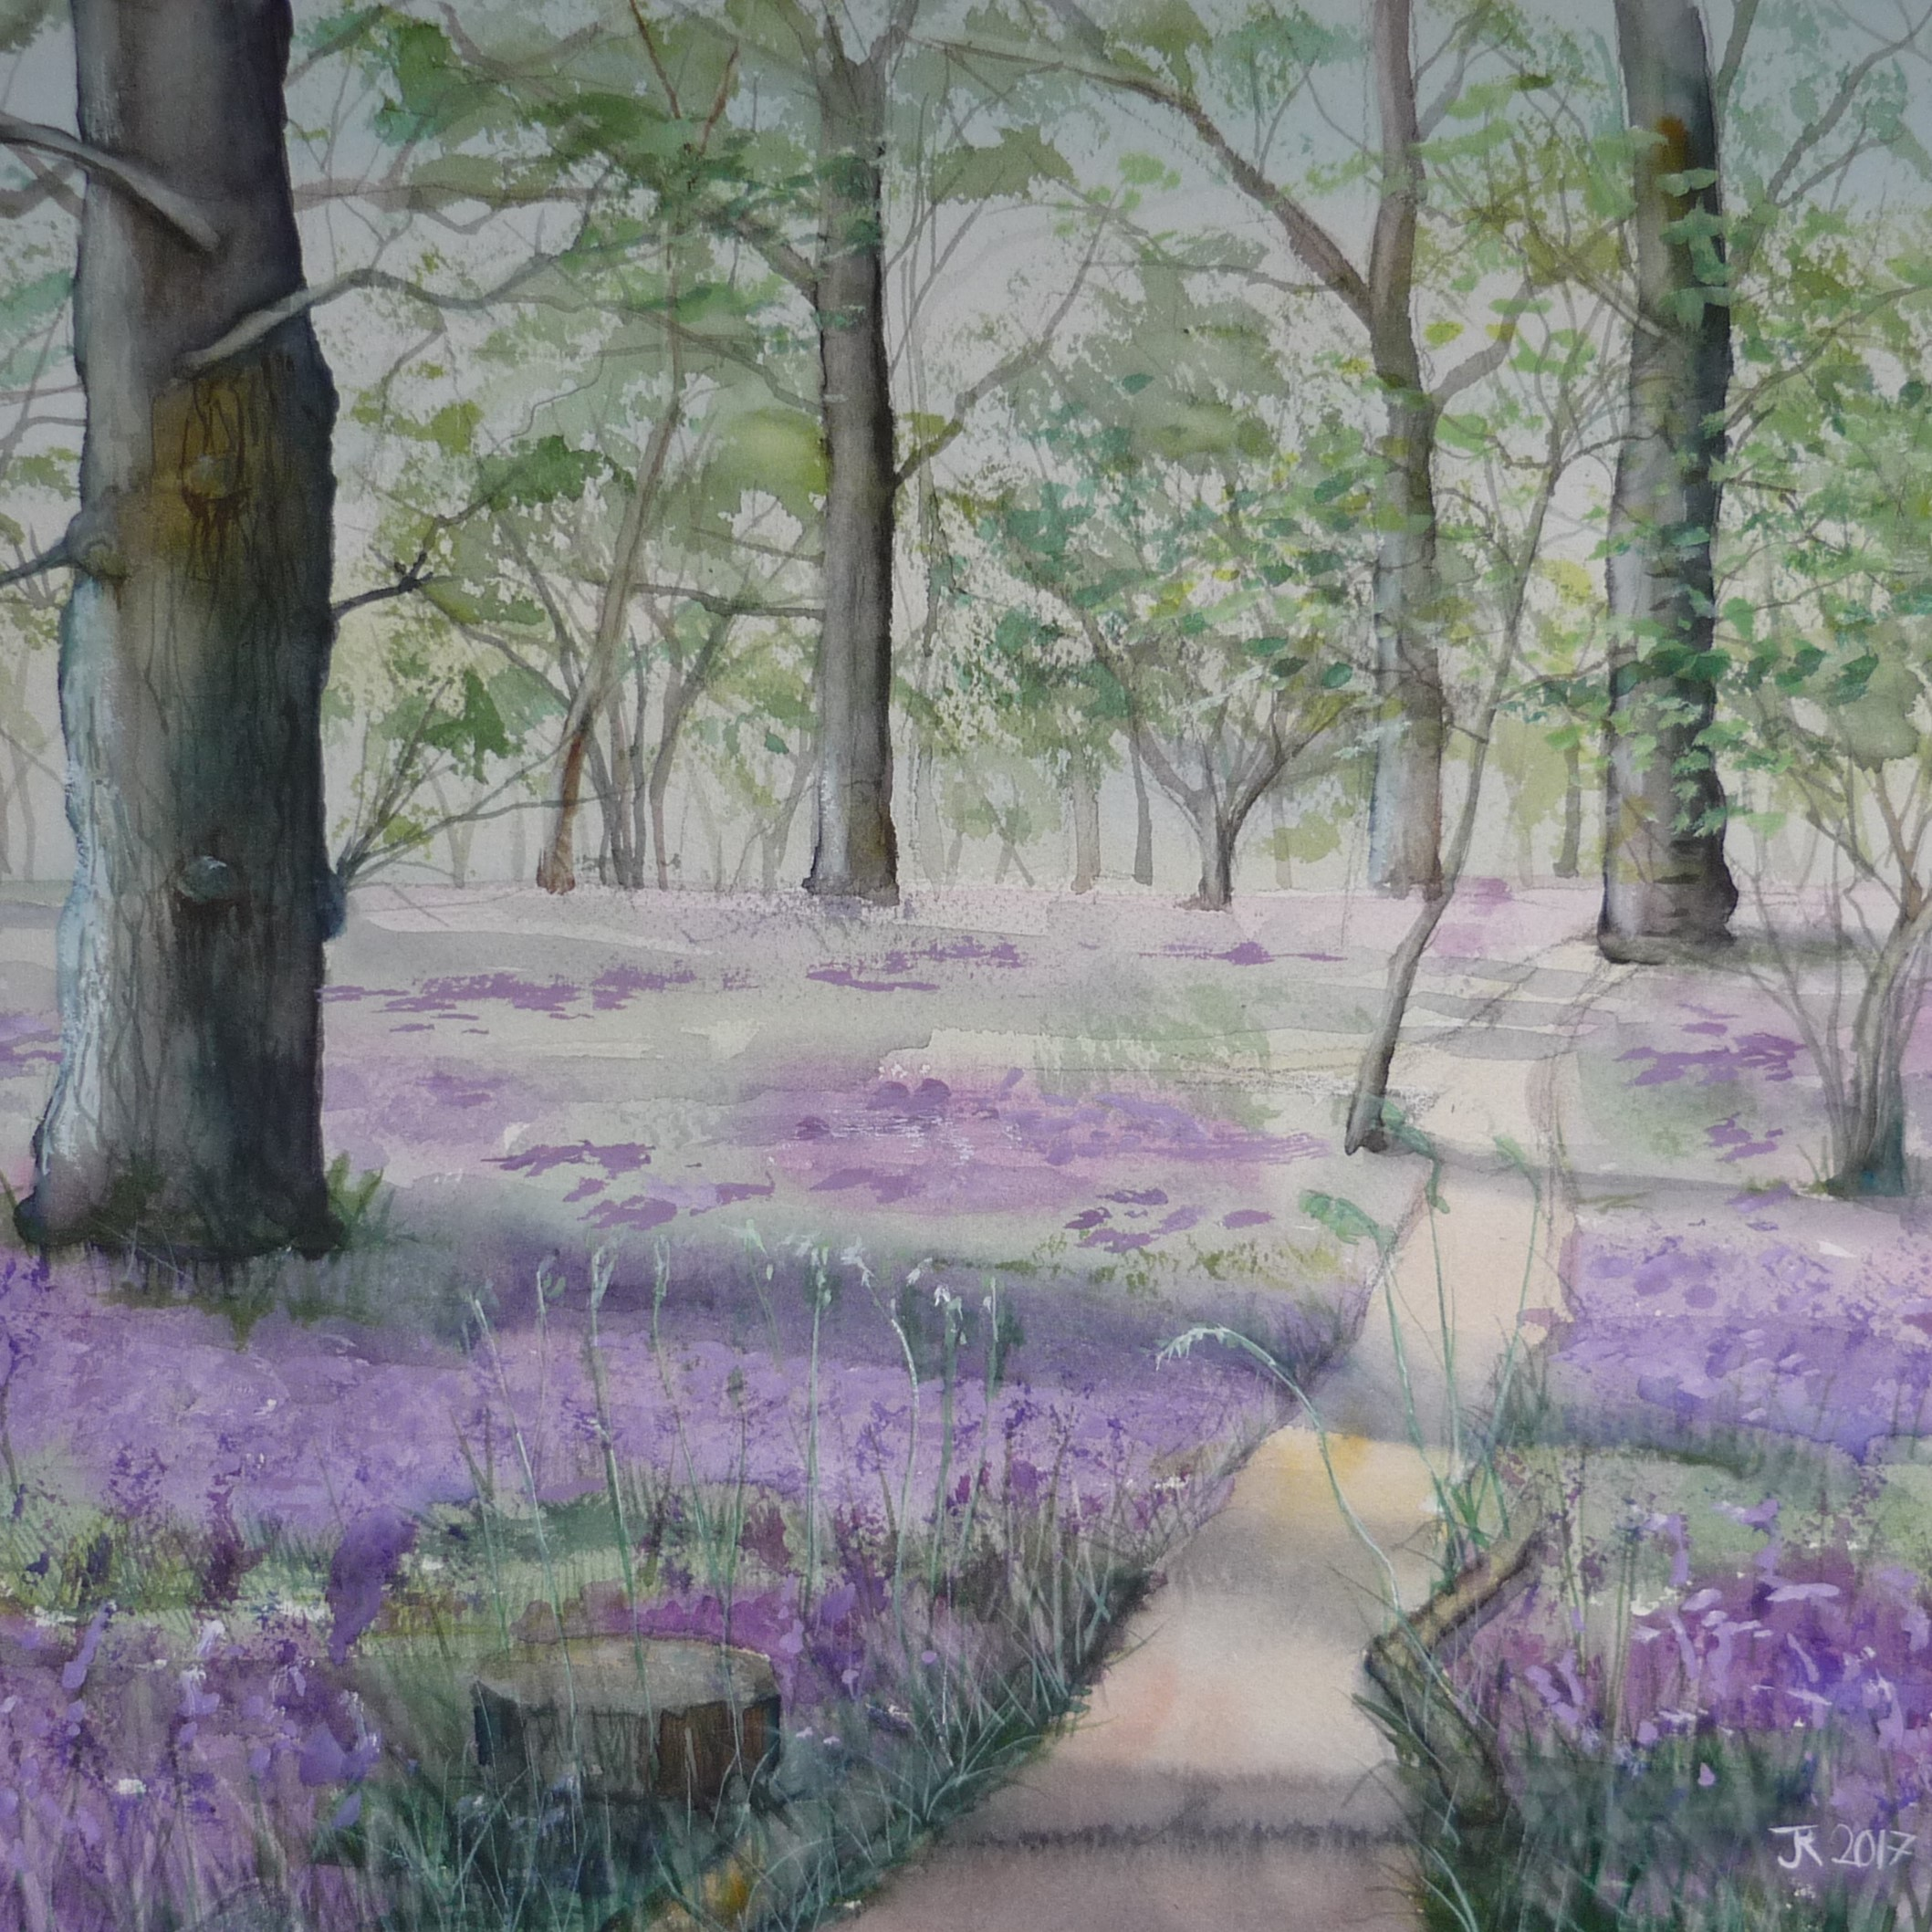 /uploads/courses/4319-02/Bluebells_in_Perivale_Wood_square.jpg